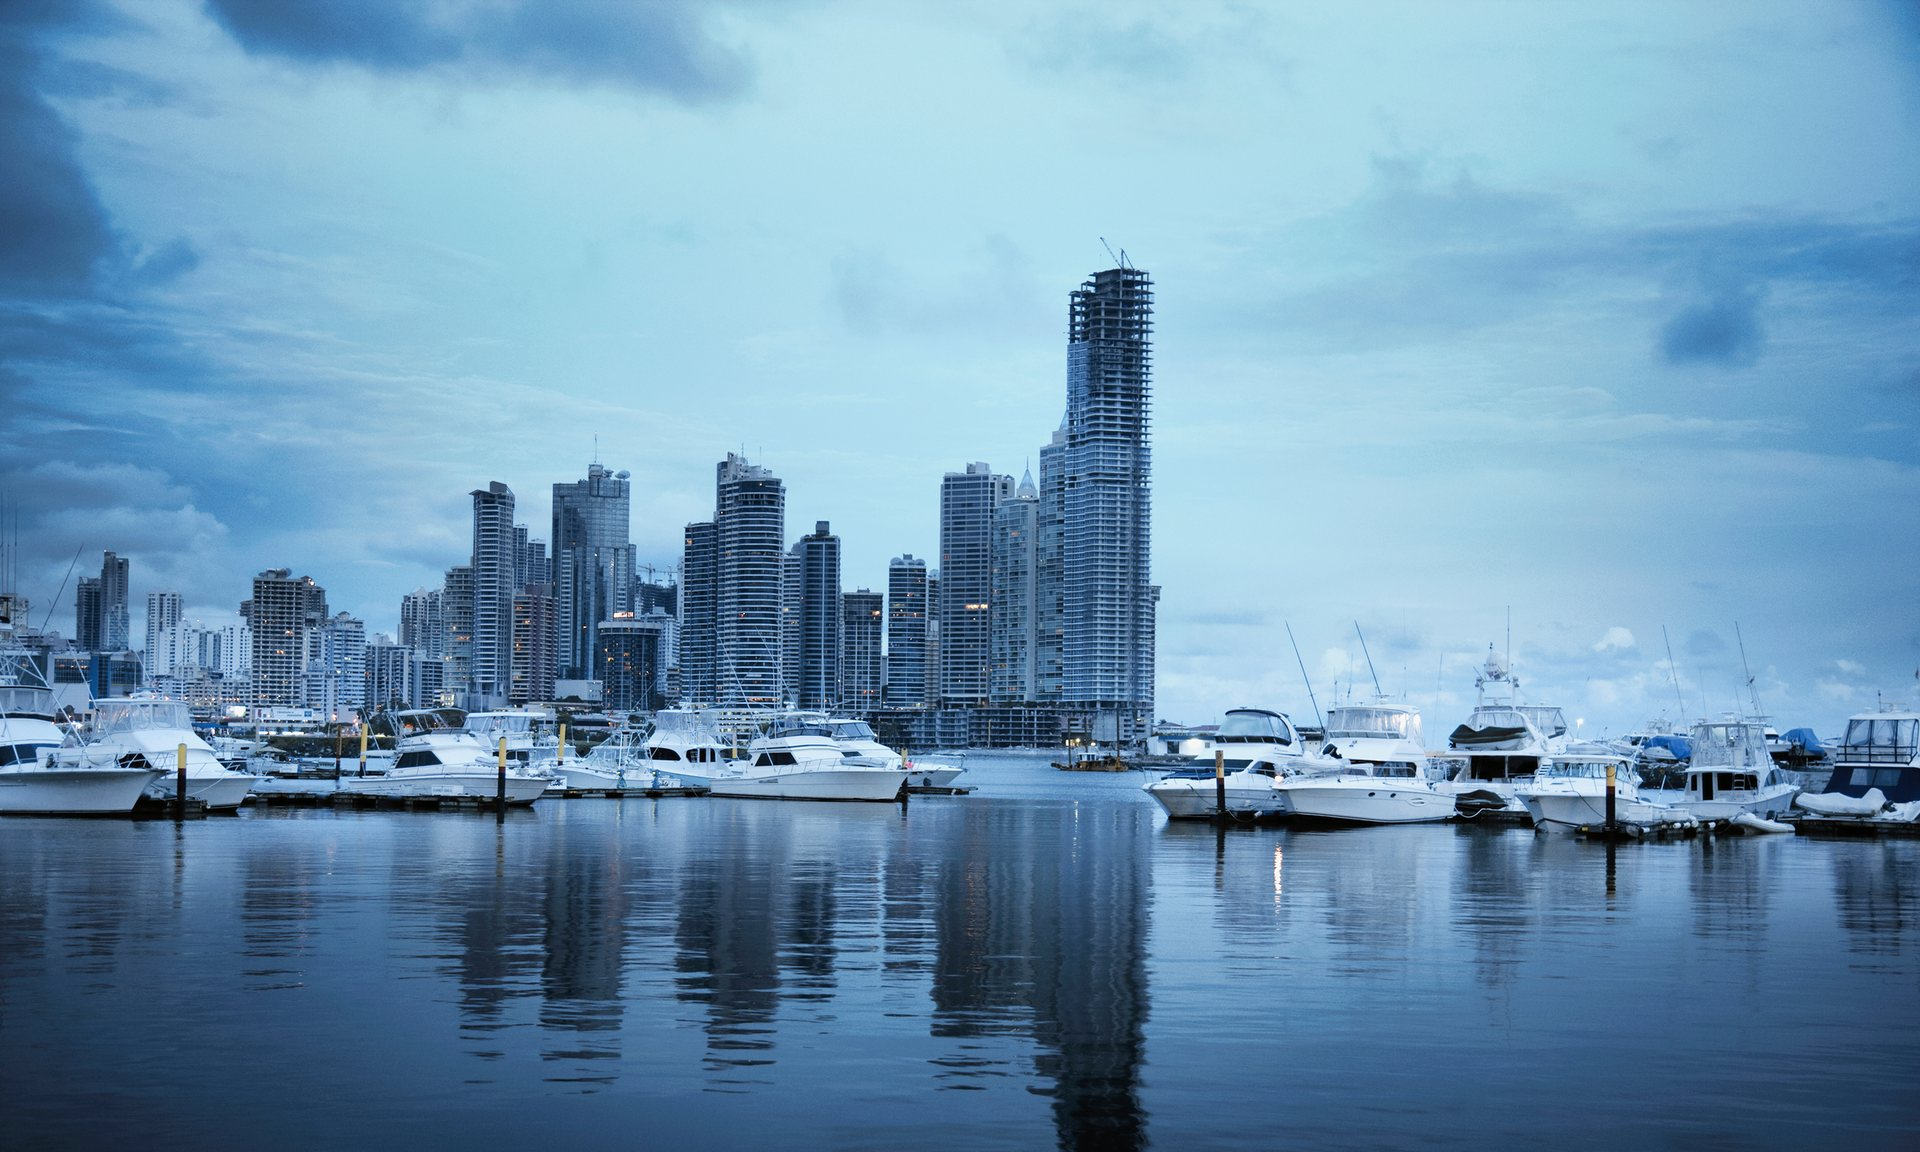 Panama, where Mossack Fonseca is based.  Photograph: DreamPictures/Getty Images/Tetra images RF